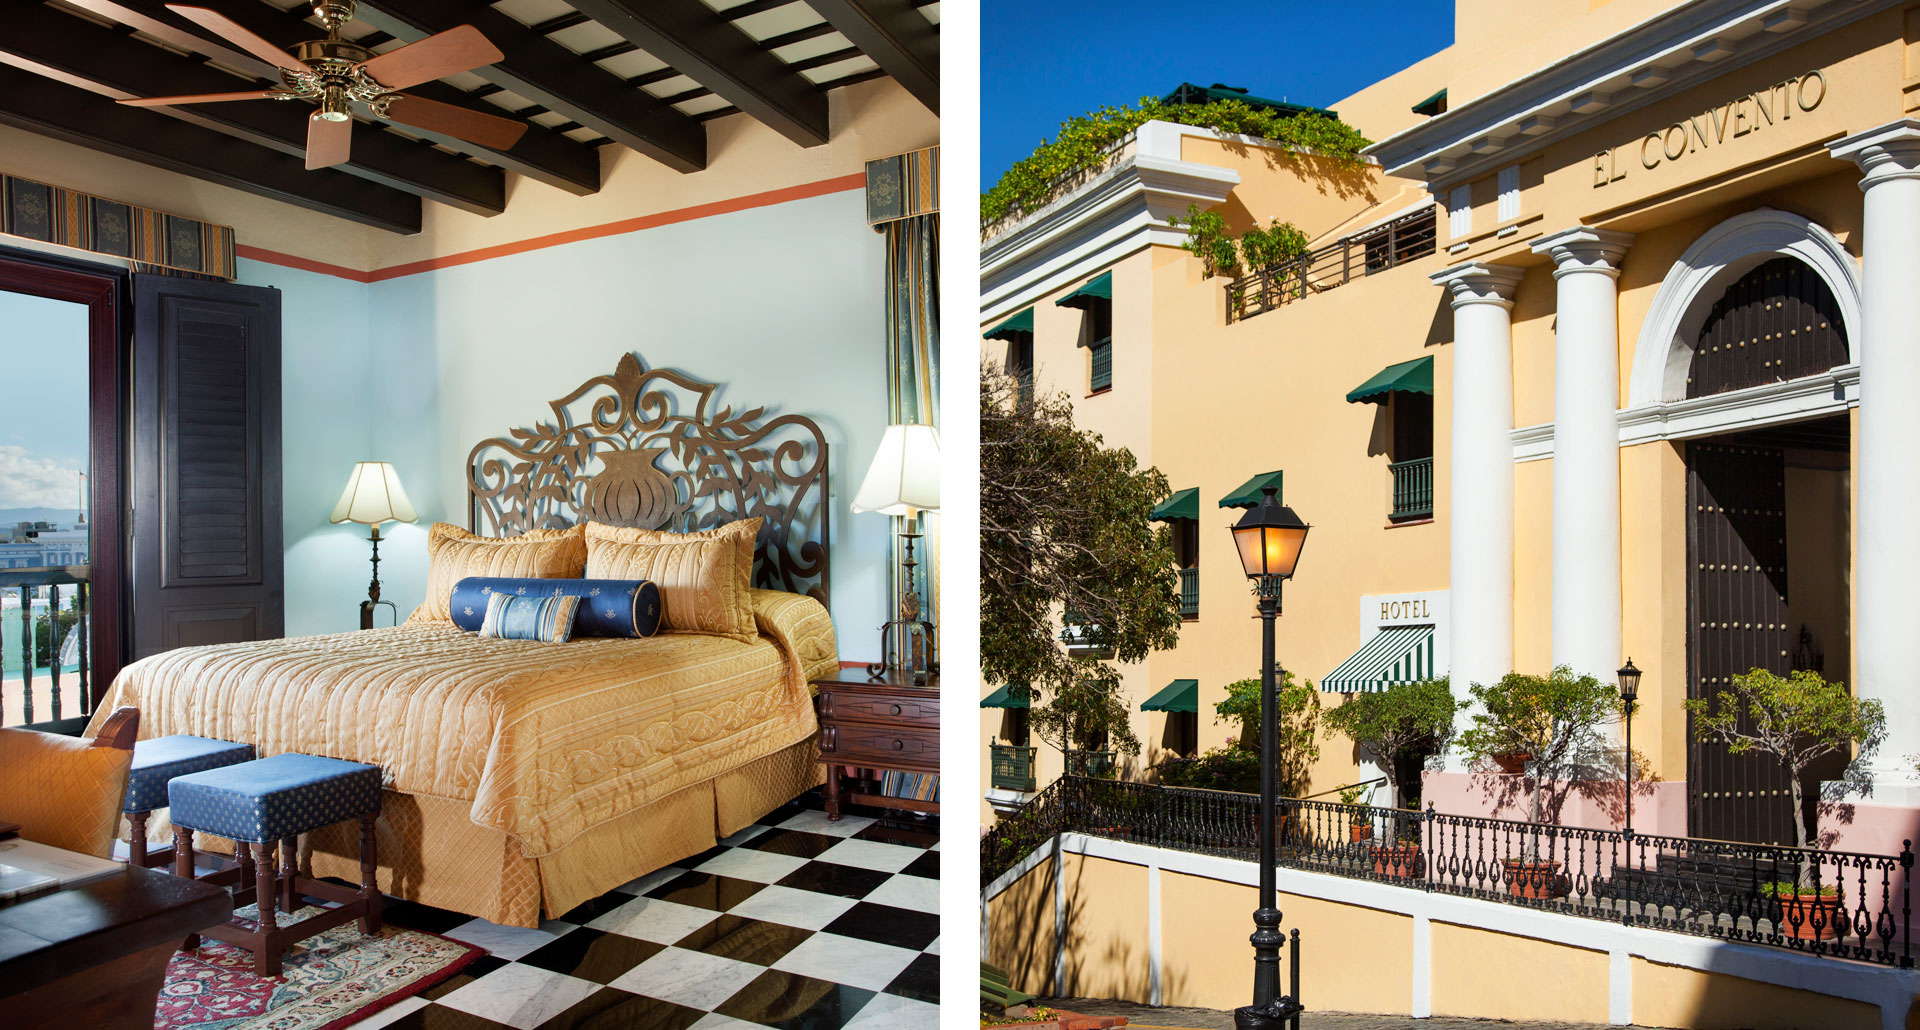 El Convento - boutique hotel in San Juan